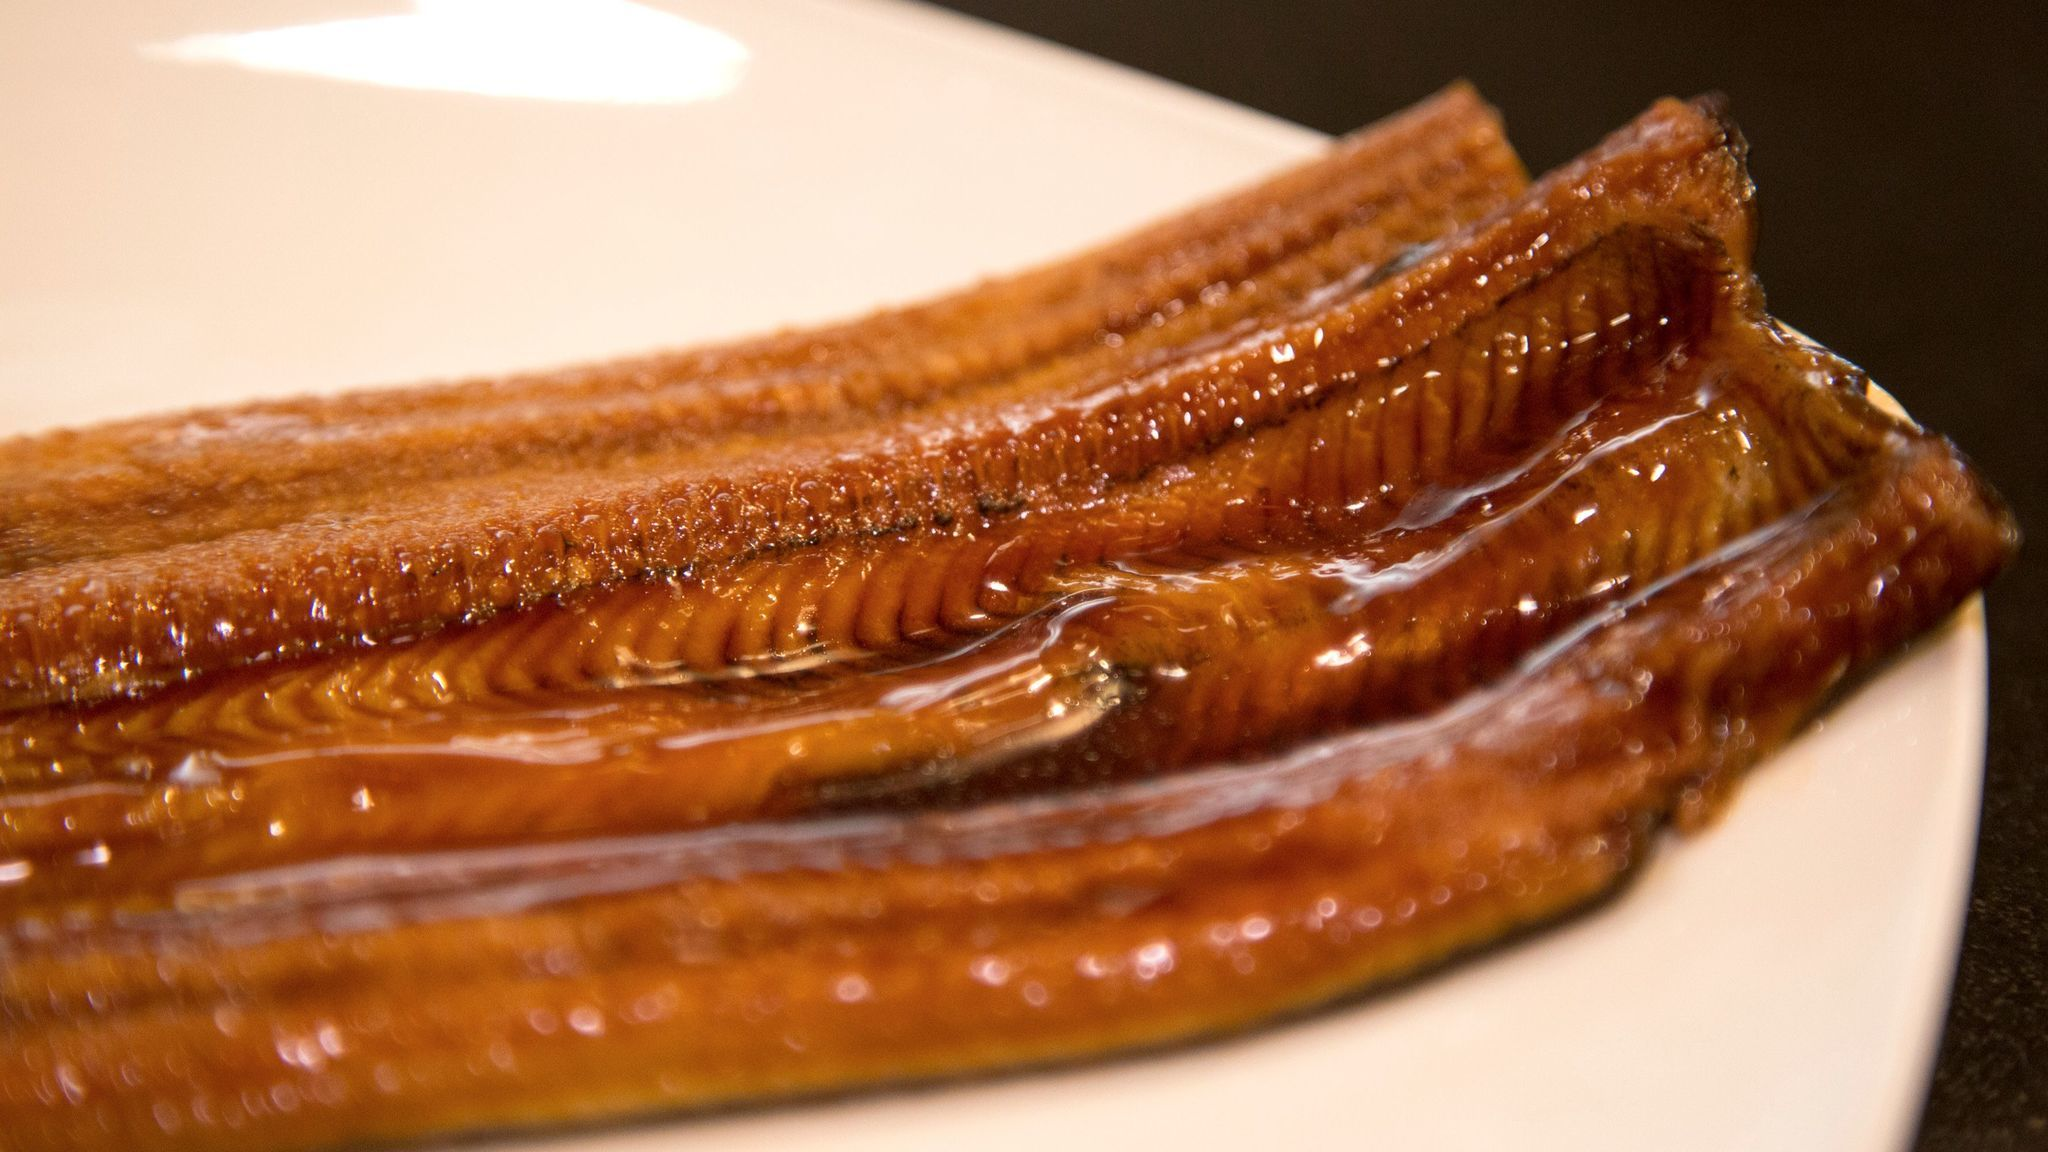 Eel is considered an unsustainable species.